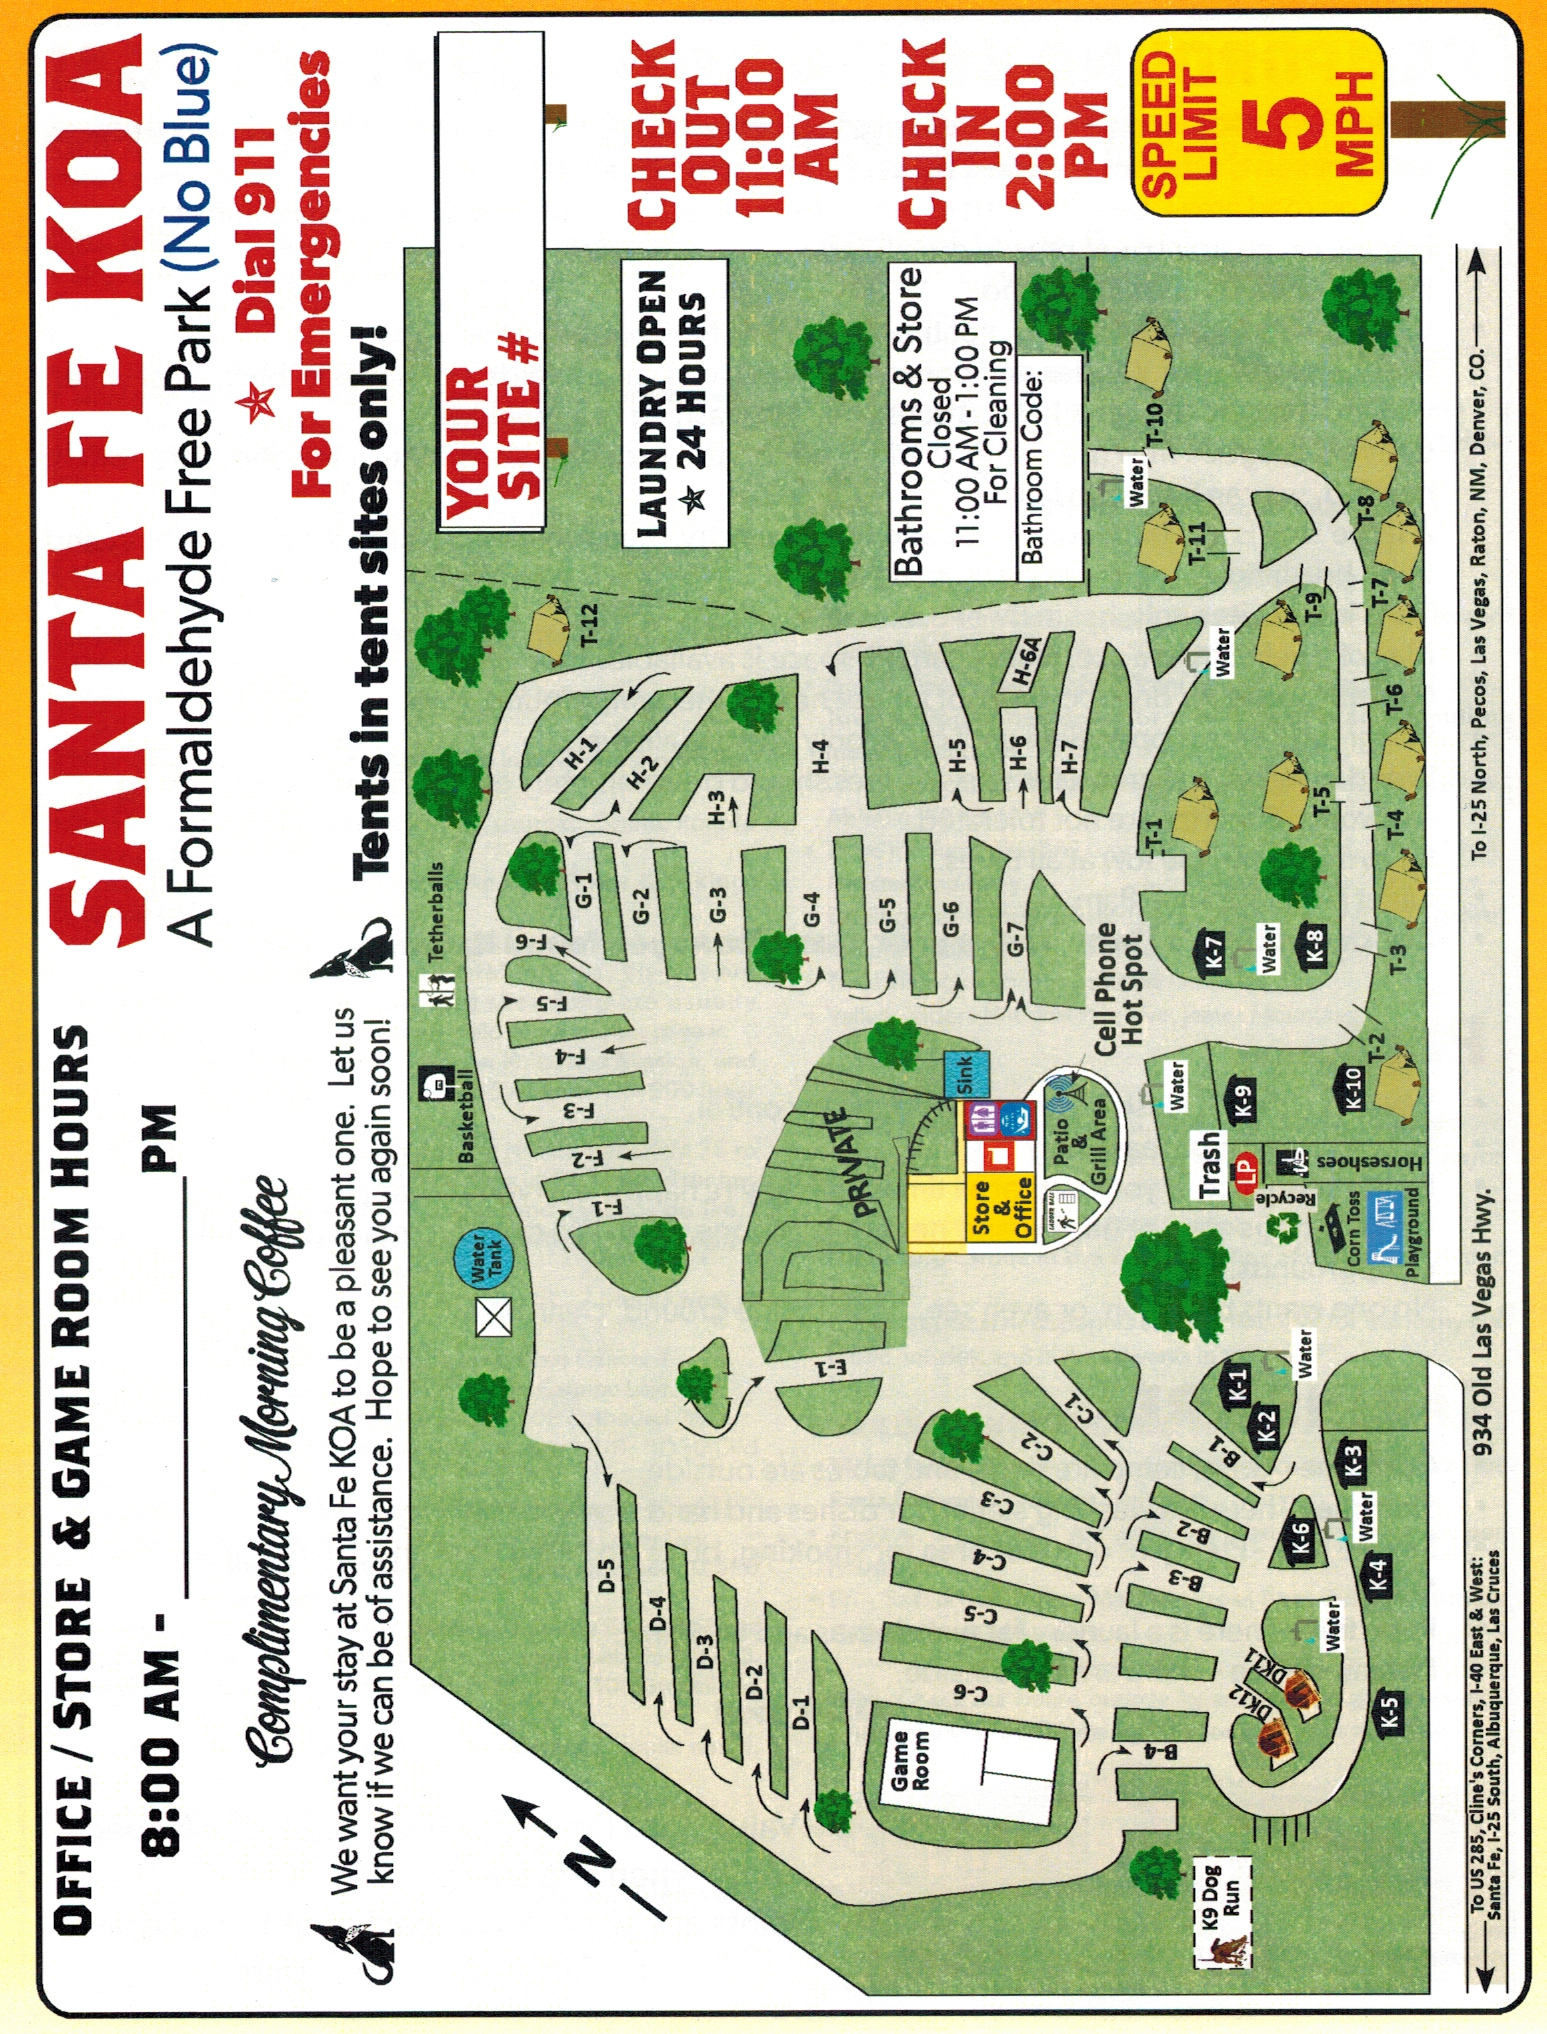 Santa Fe, New Mexico Campground | Santa Fe KOA on scott louisiana map, koa oklahoma map, manchester california map, tower park koa map, scott koa campground map, petaluma koa map, koa camping map of georgia, koa arizona map, koa in usa,